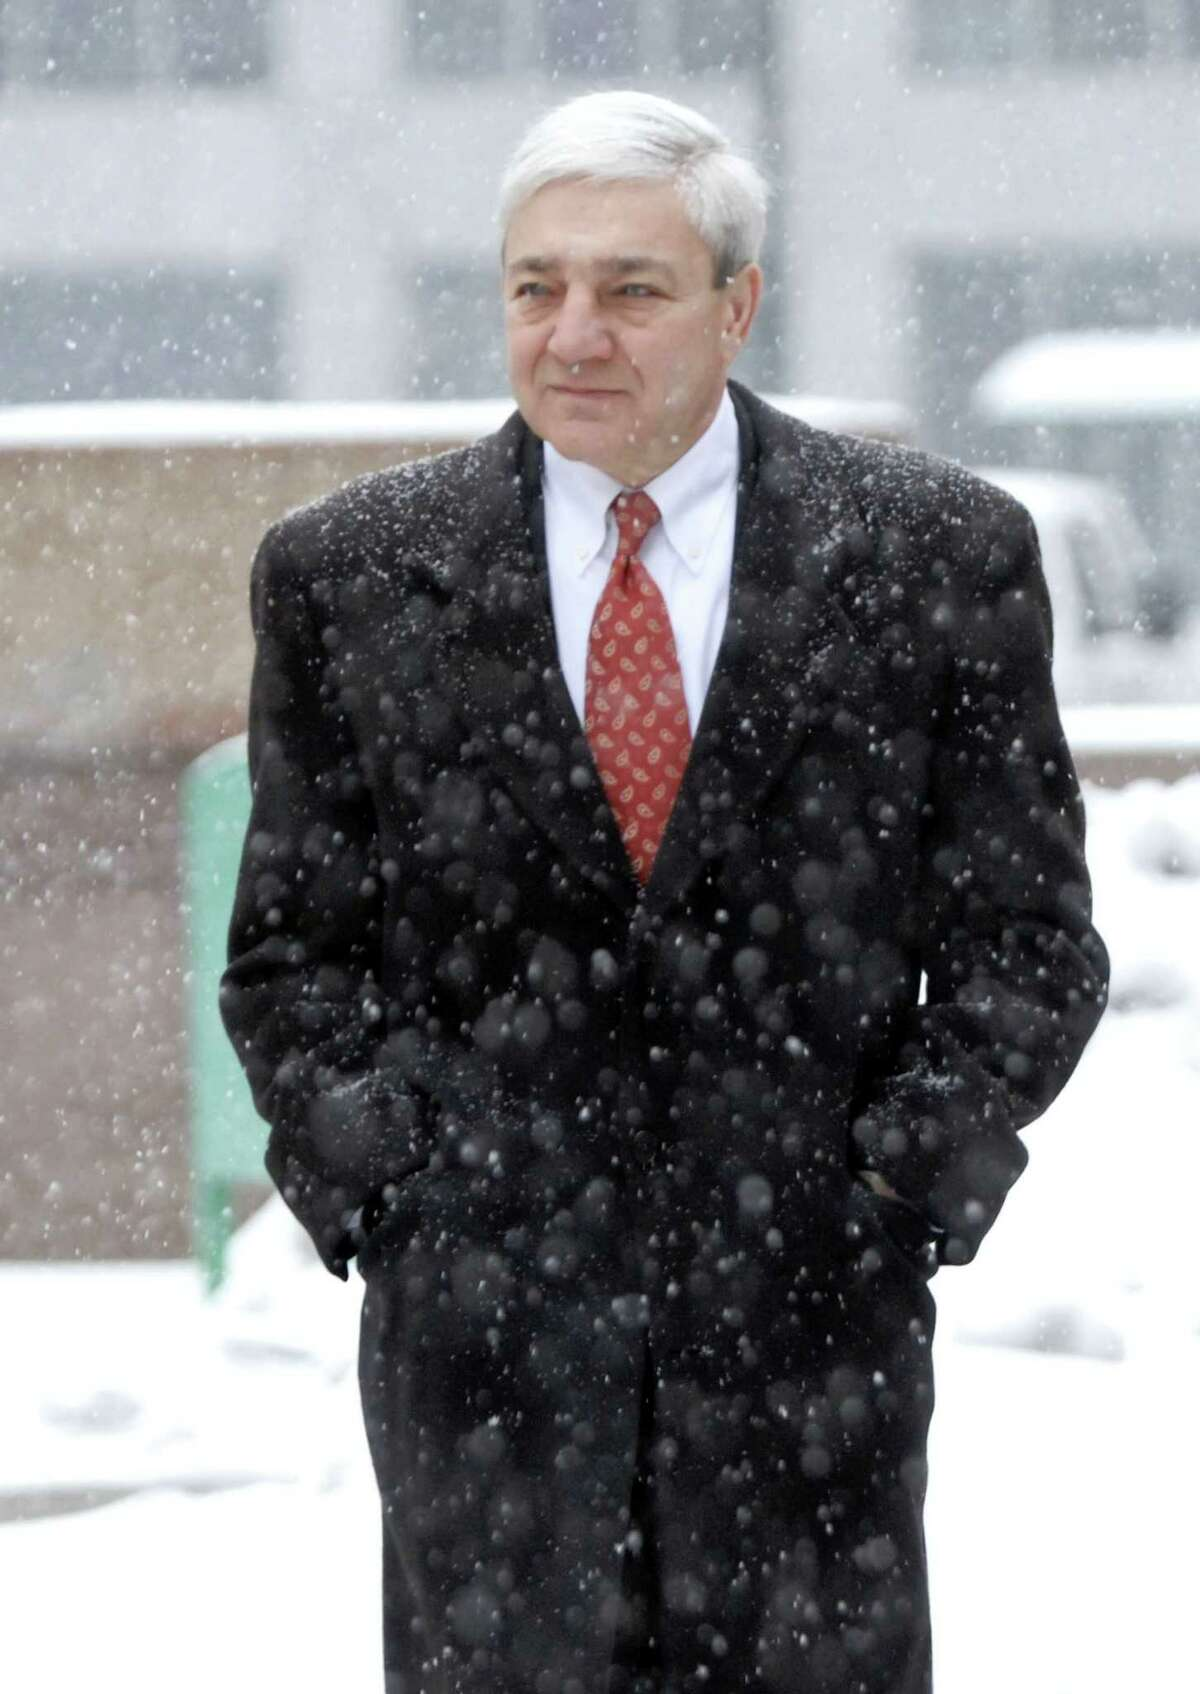 Former Penn State President Graham Spanier walks to the Dauphin County Court in a snow storm for a pretrial hearing in Harrisburg, Pa. on Tuesday, Dec. 17, 2013.